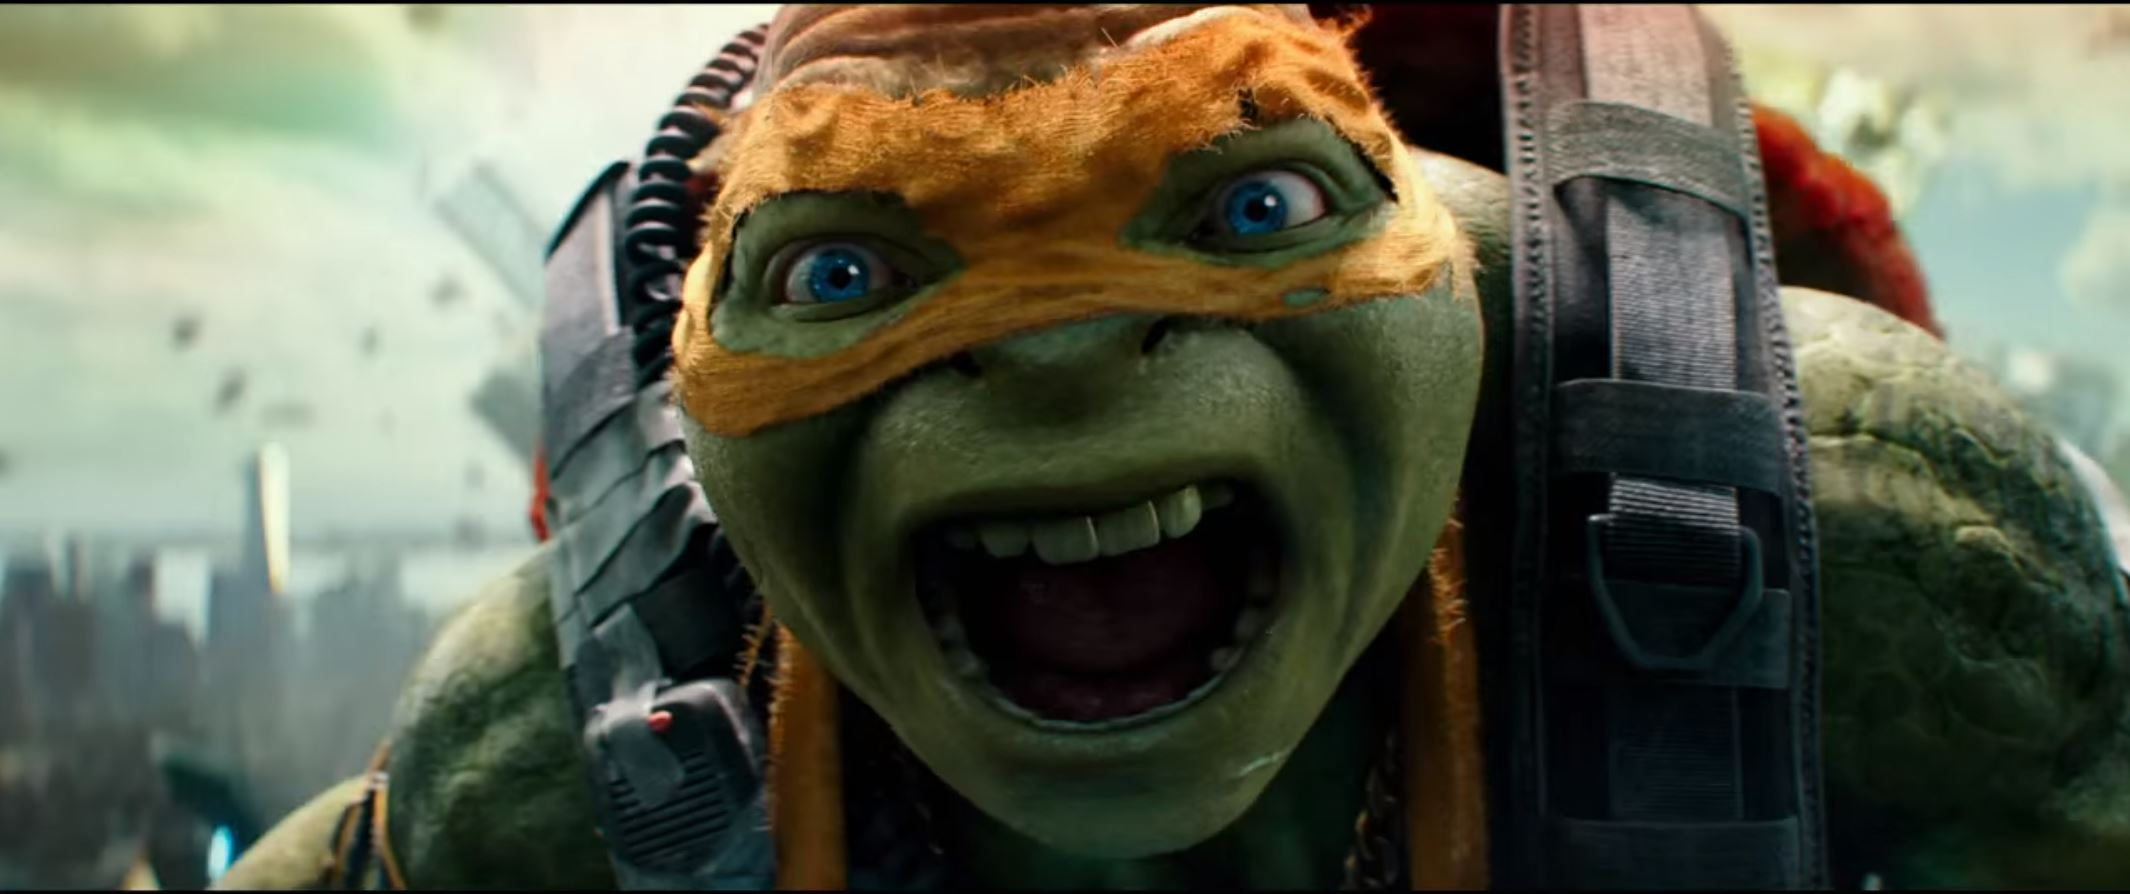 Super Bowl Rerun: The Teenage Mutant Ninja Turtles: Out of the Shadows